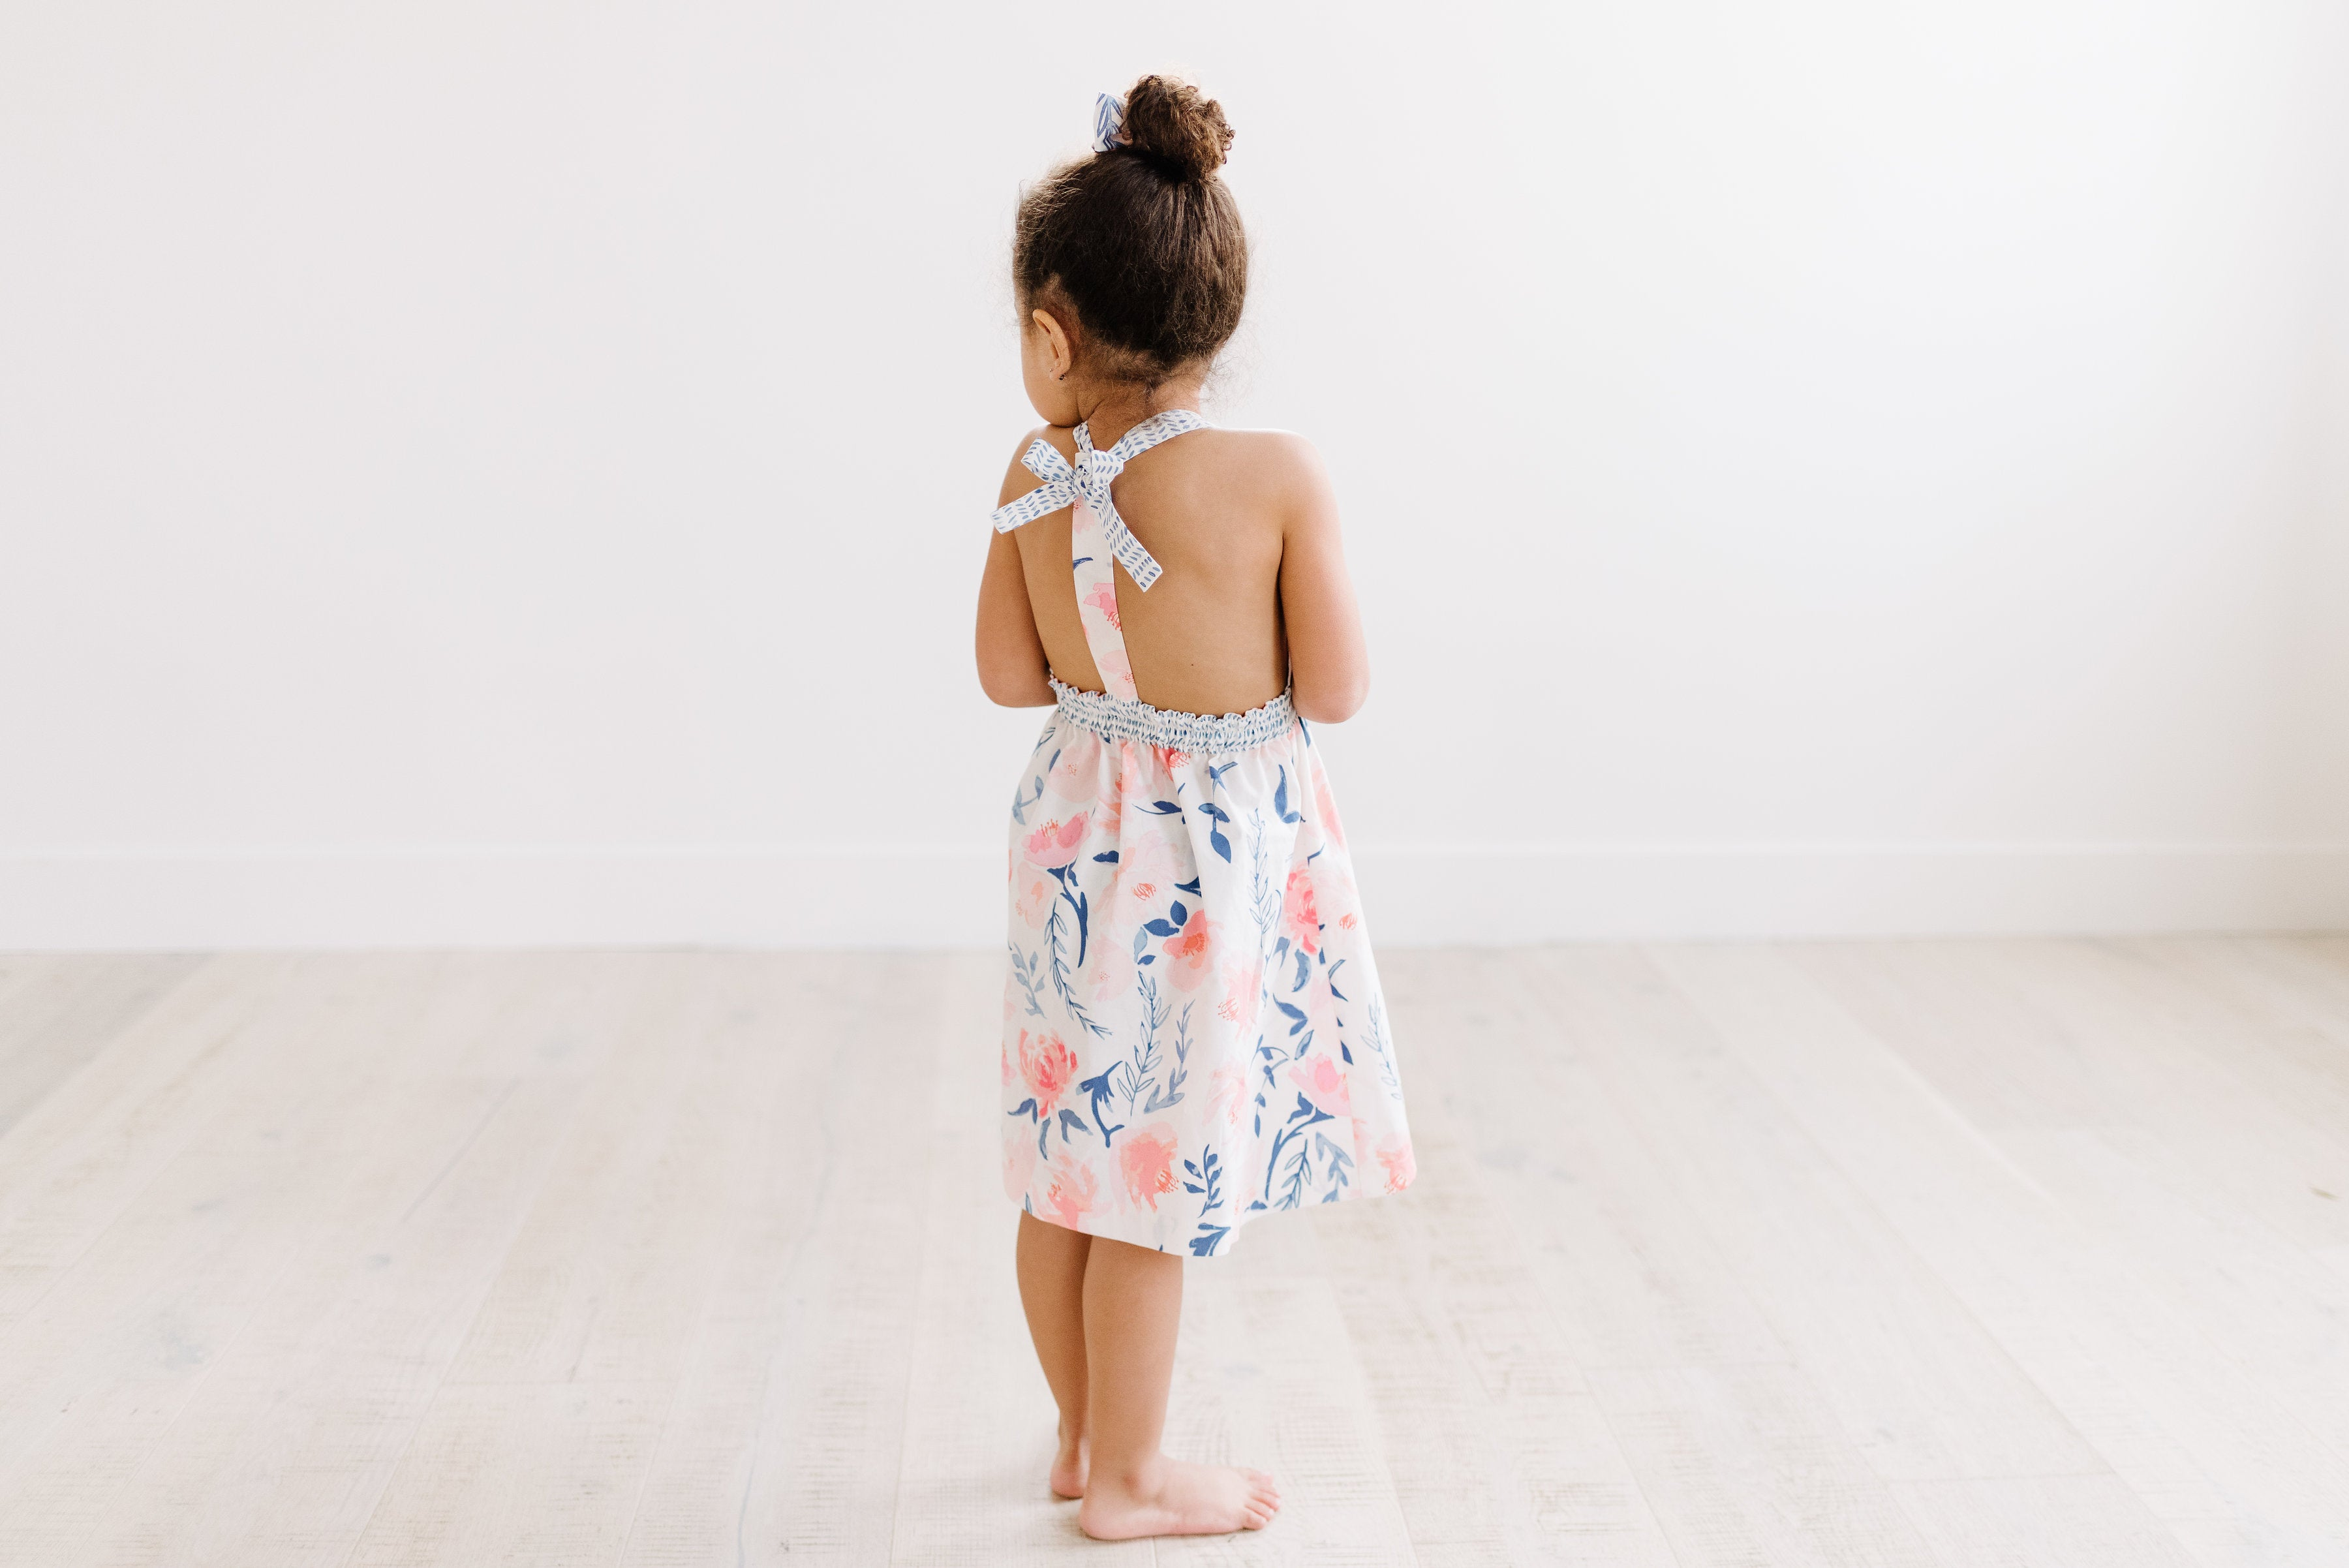 T-Back Dress in Watercolor Floral